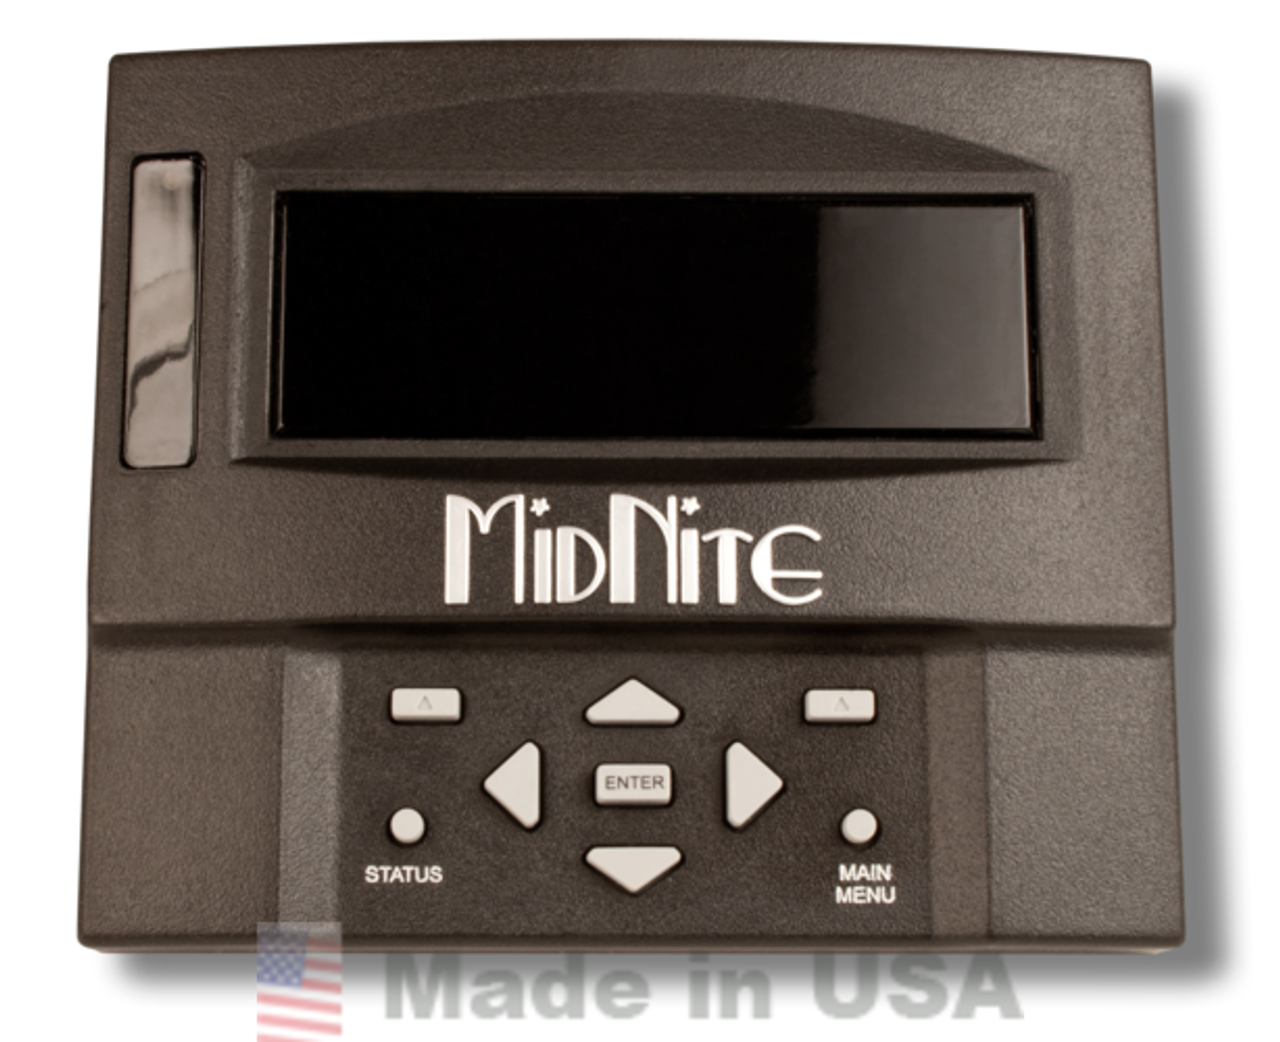 Midnite Solar MNGPDUMMY Dummy Display Panel for Midnite Classic Charge Controllers